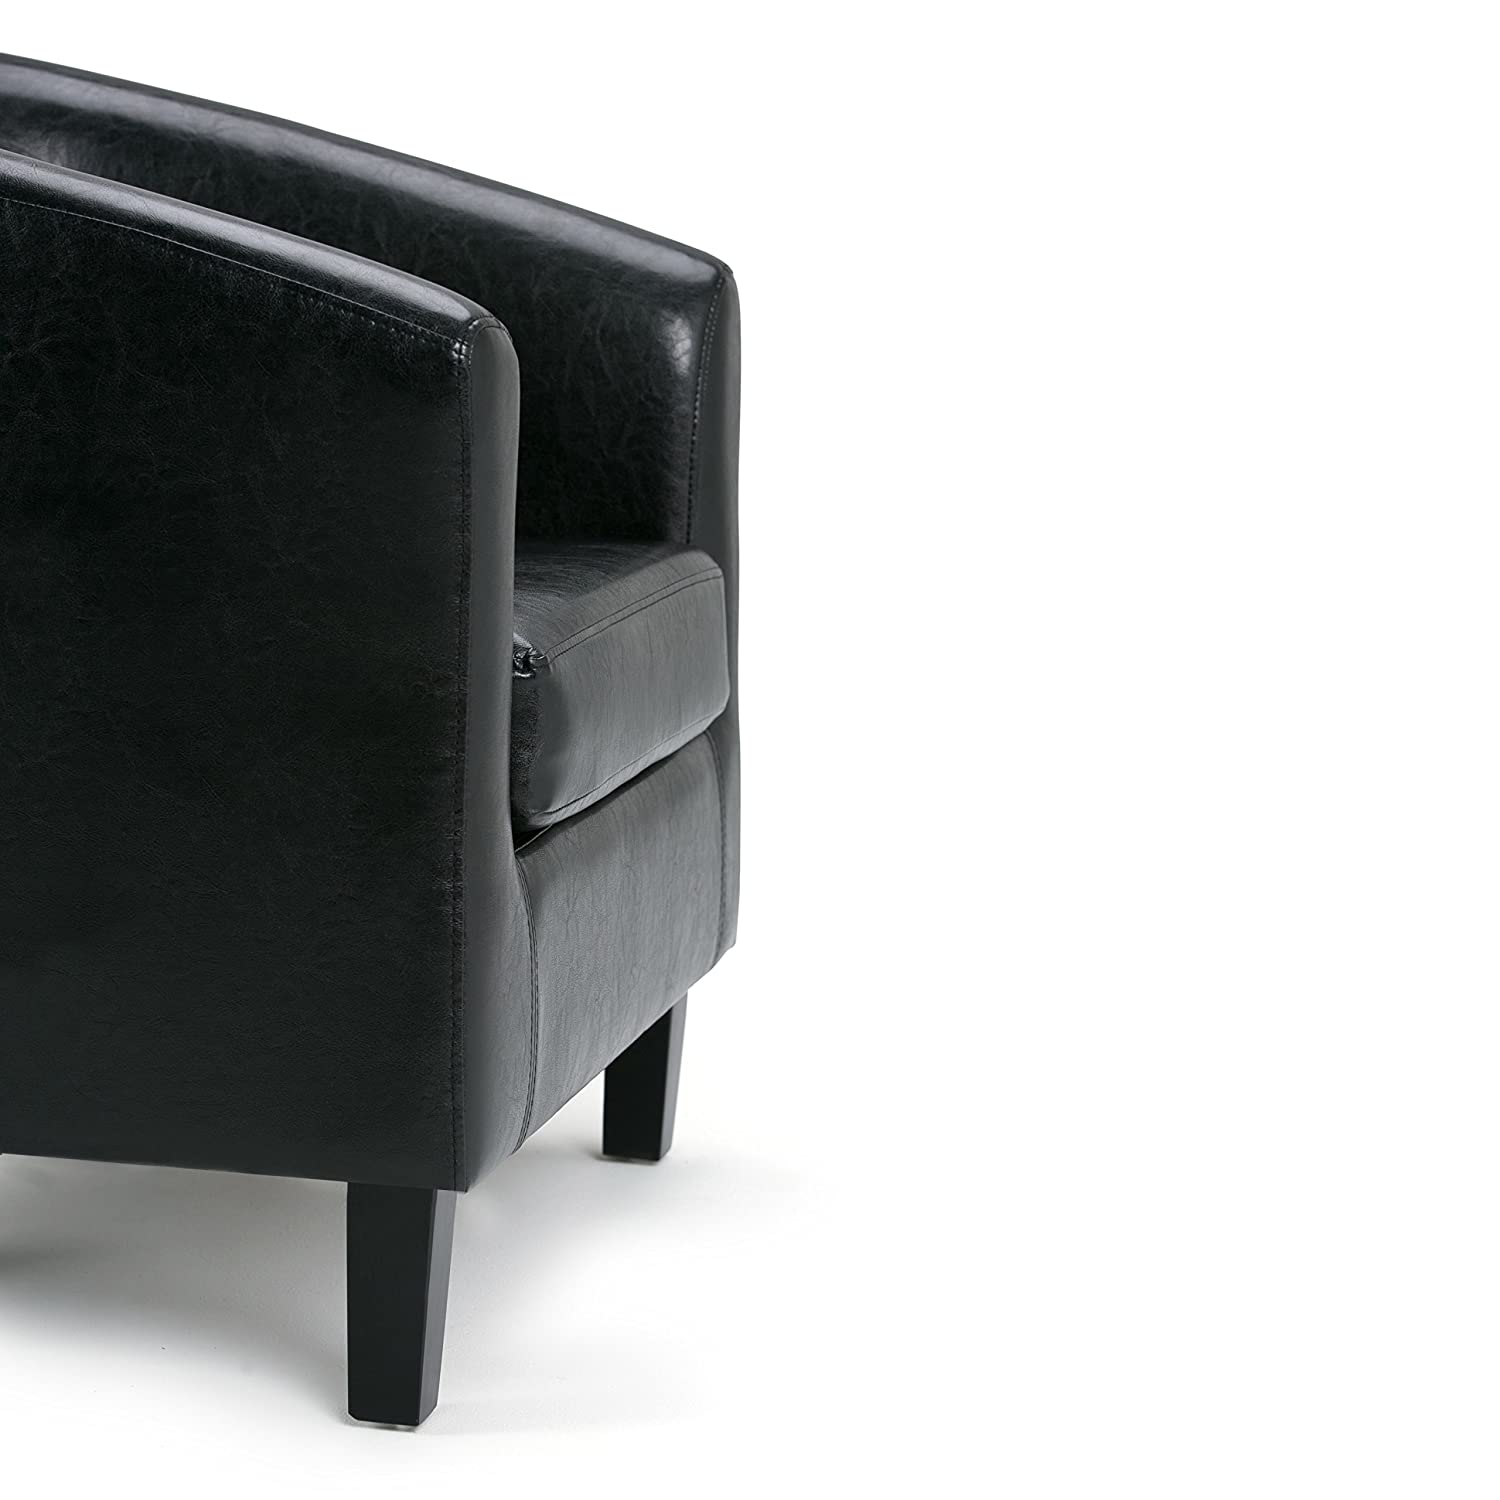 Simpli Home AXCTUB-002 Austin 30 inch Wide Transitional Tub Chair in Black Faux Leather